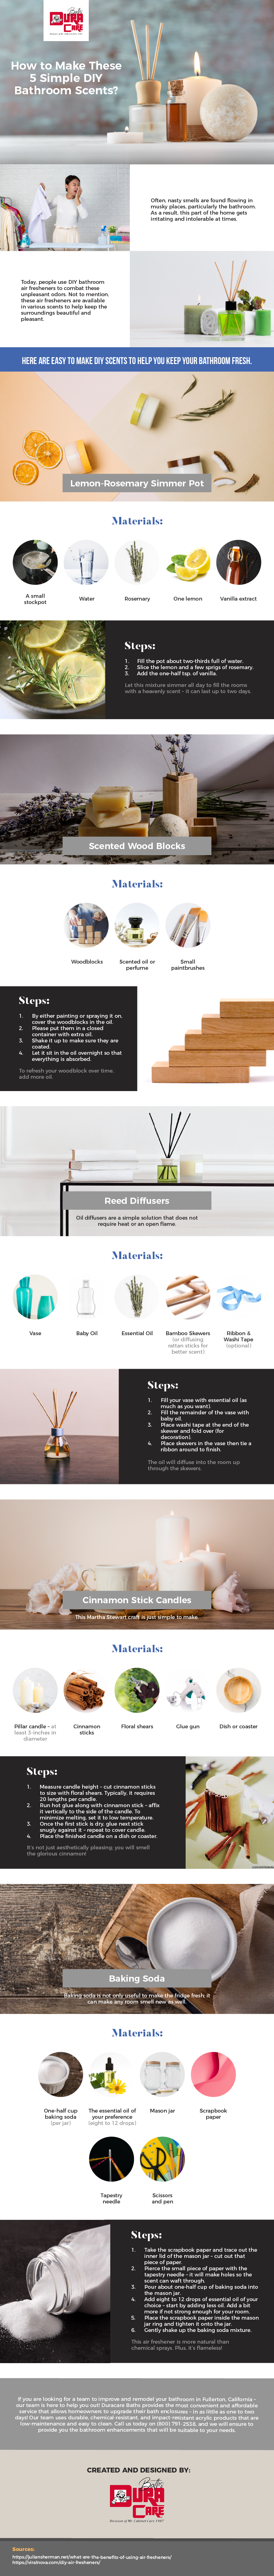 How To Make These 5 Simple DIY Bathroom Scents? infographic duracarebaths.com